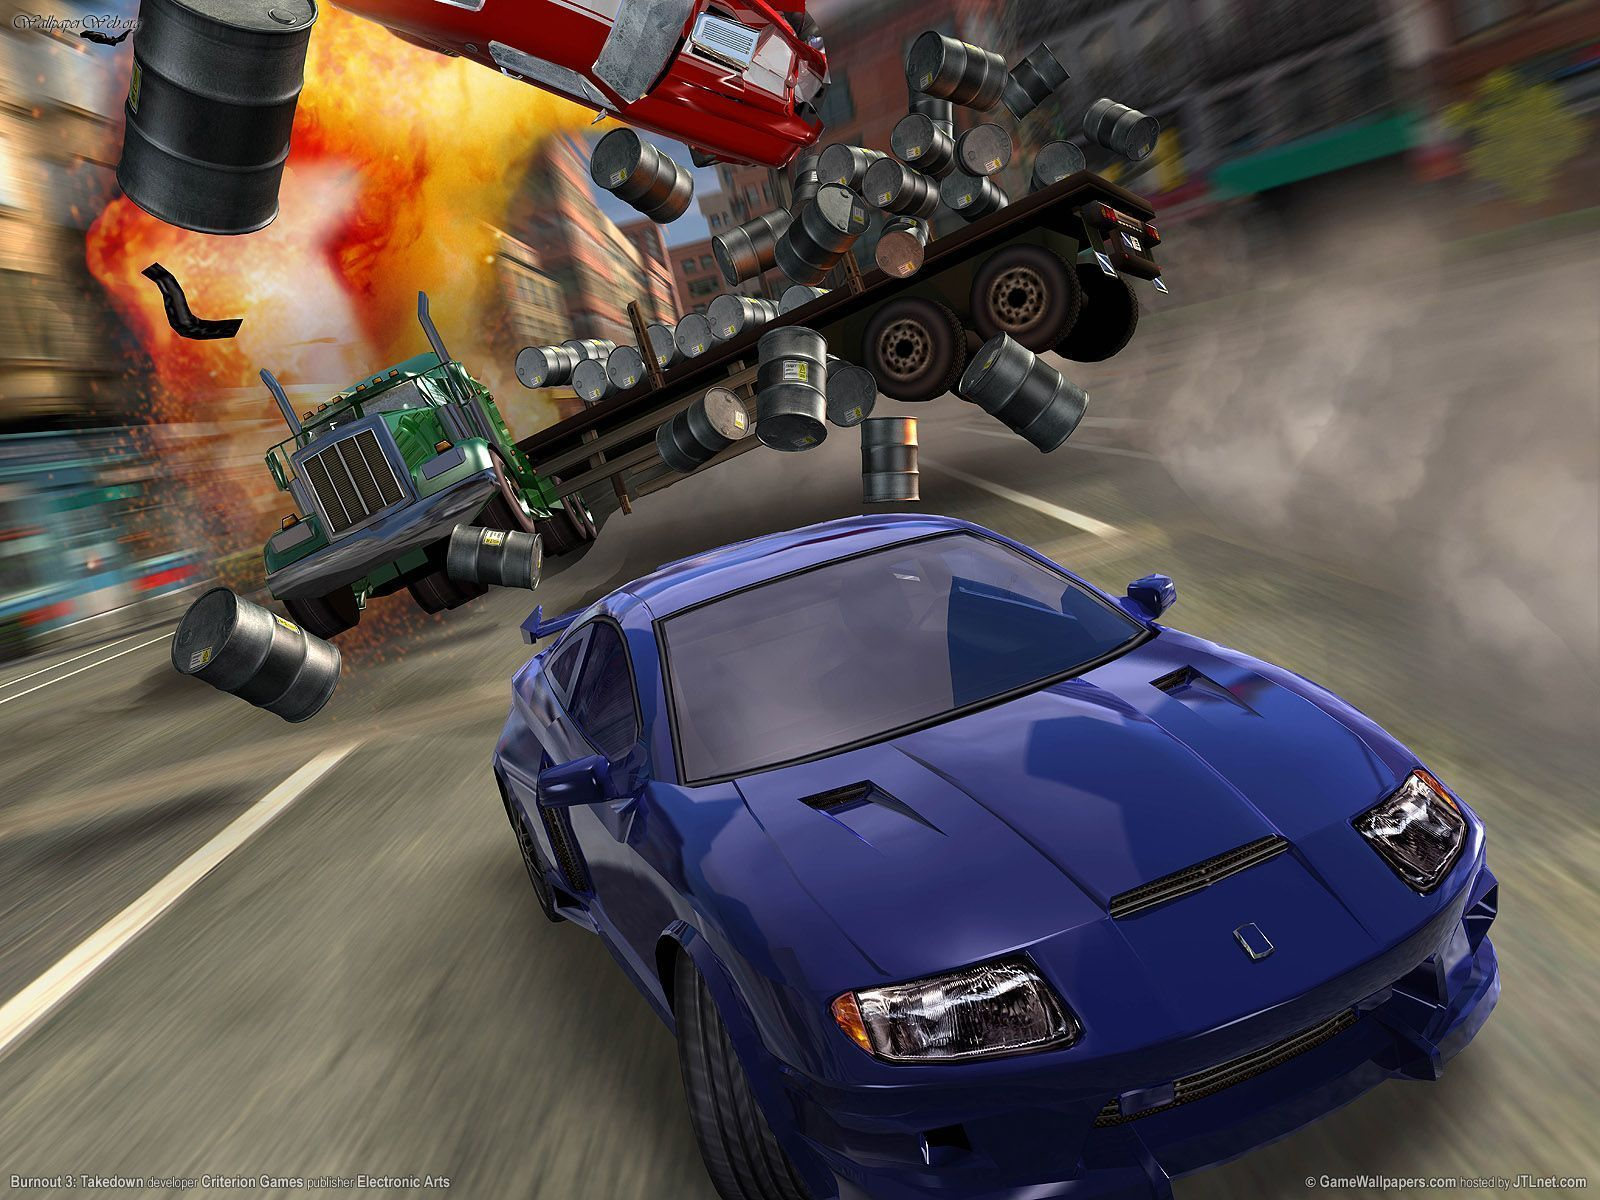 Wallpaper_burnout_3_takedown_01_1600